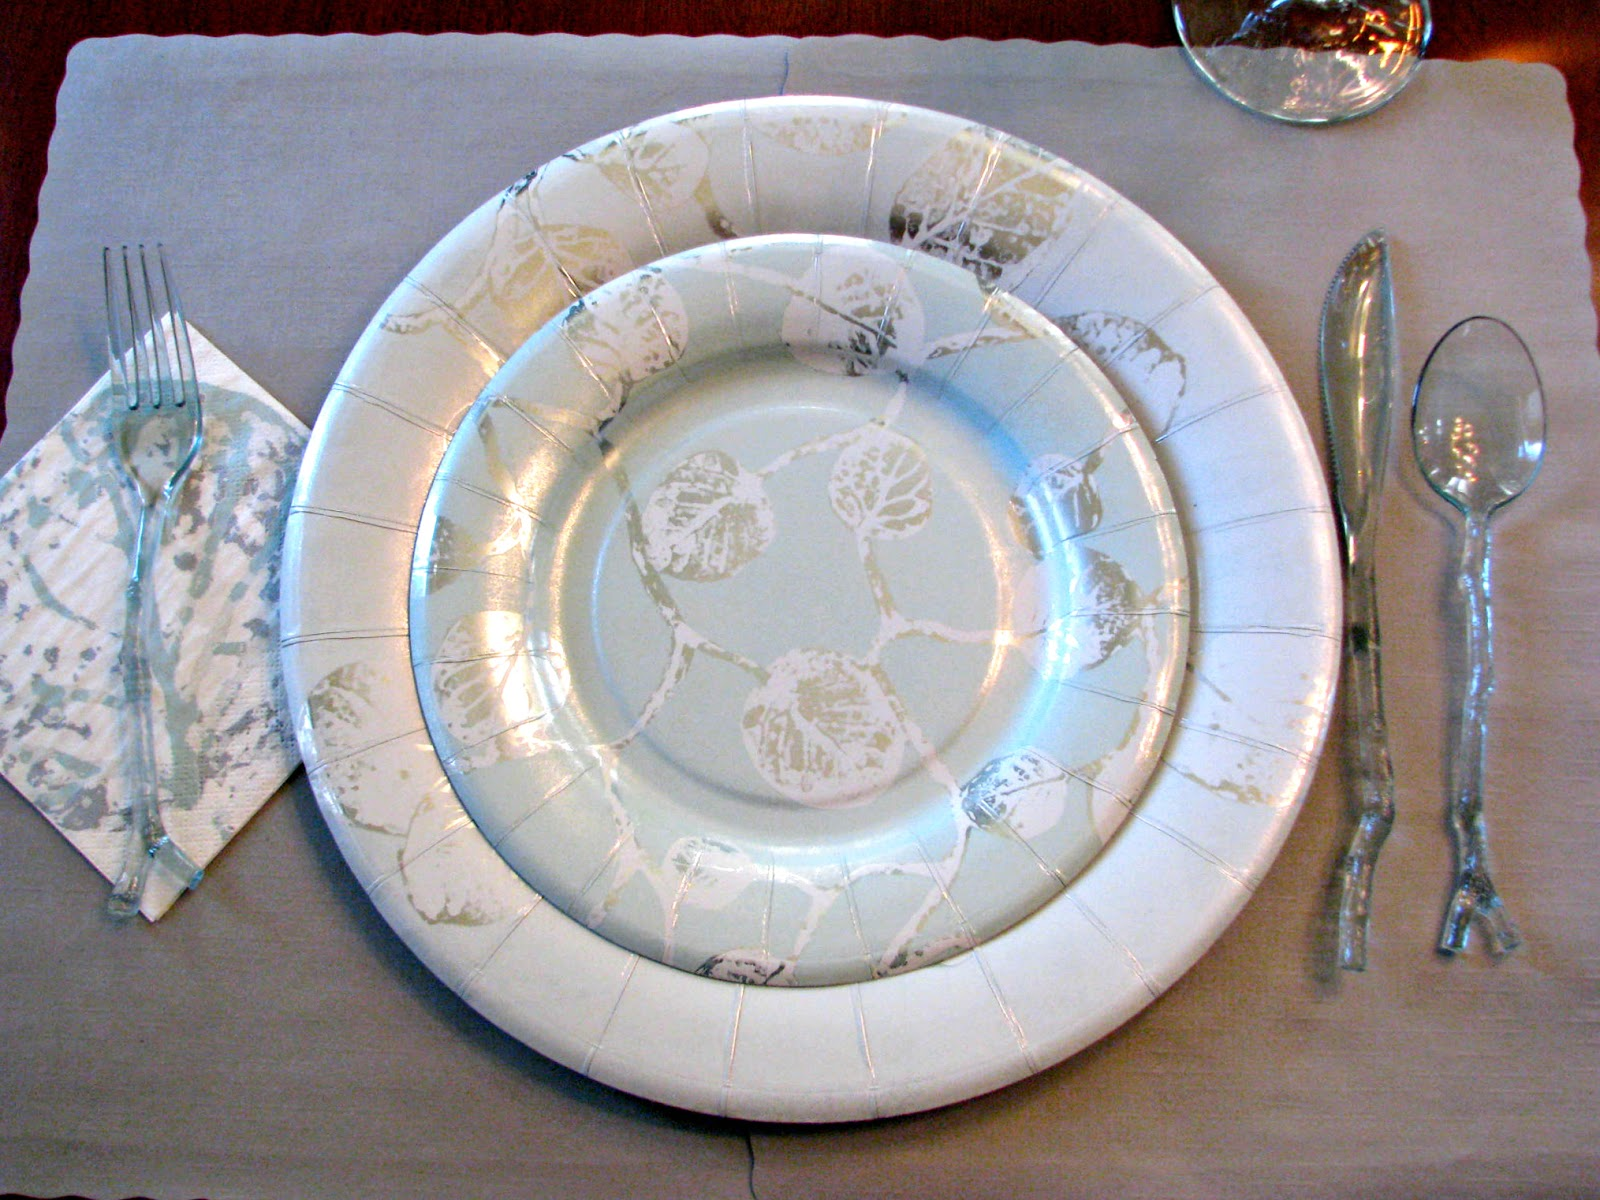 Botanical Leaf Plates with Teal Twig/Stick Utensils